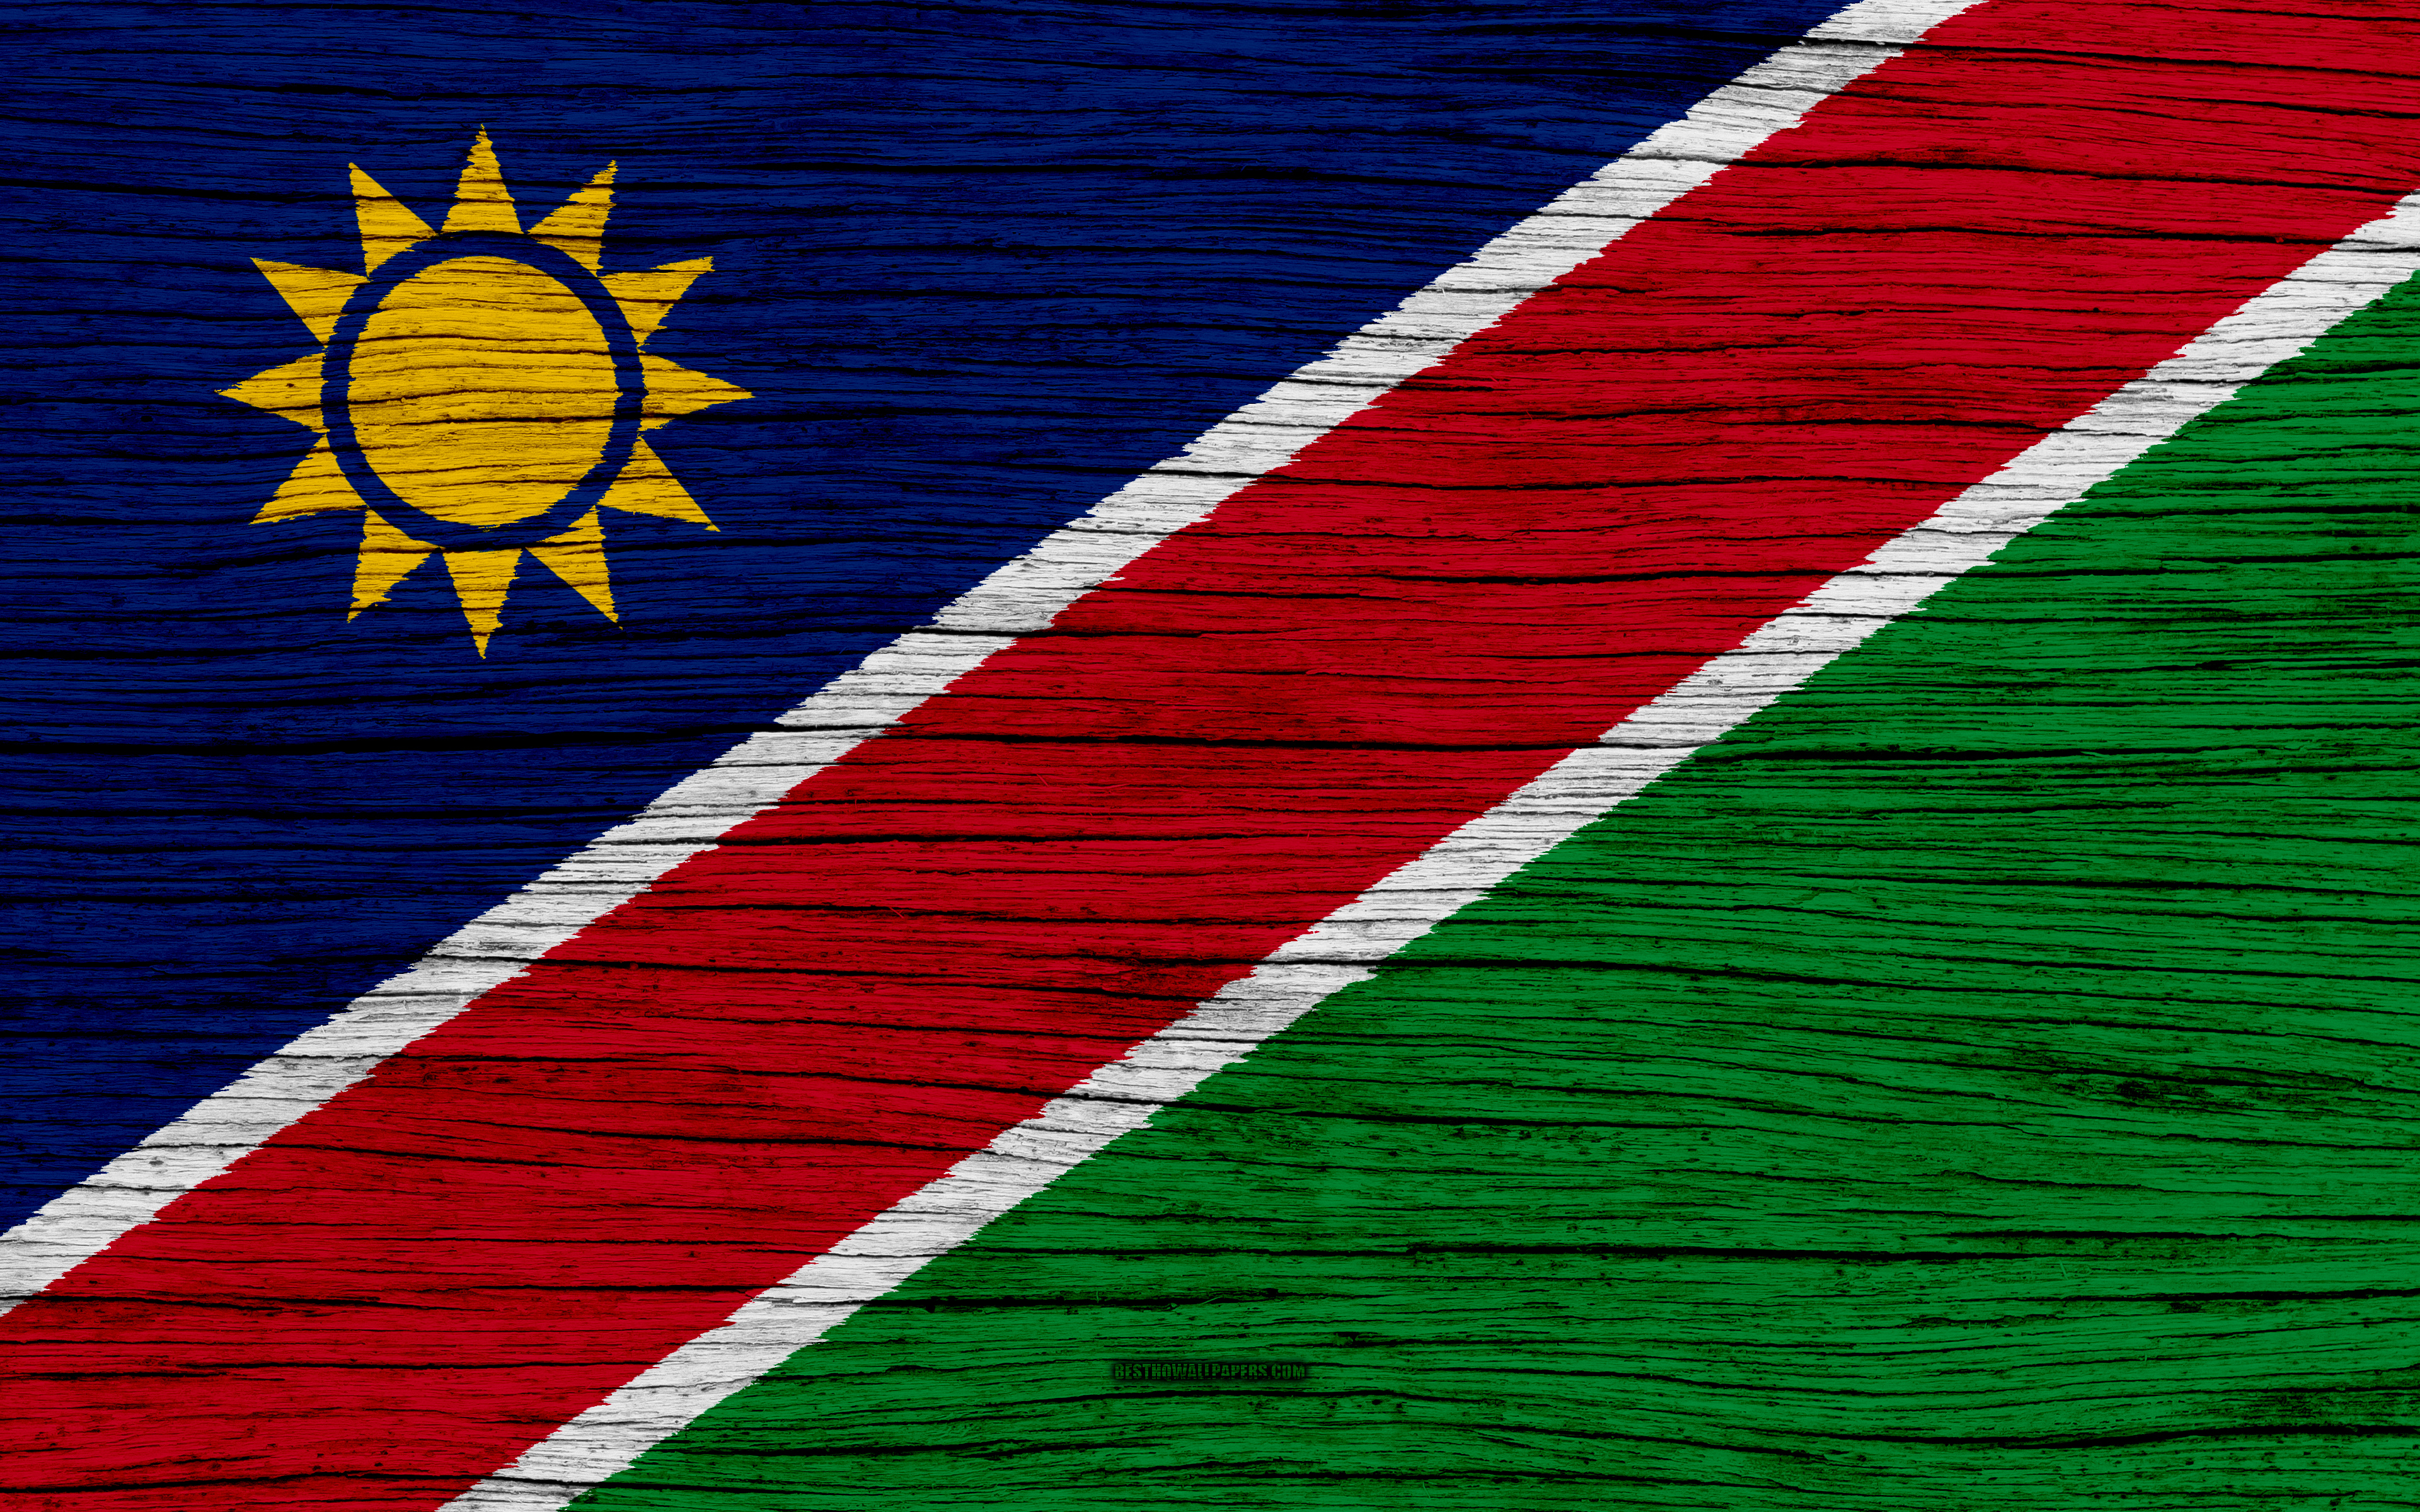 Download wallpapers Flag of Namibia 4k Africa wooden texture 3840x2400